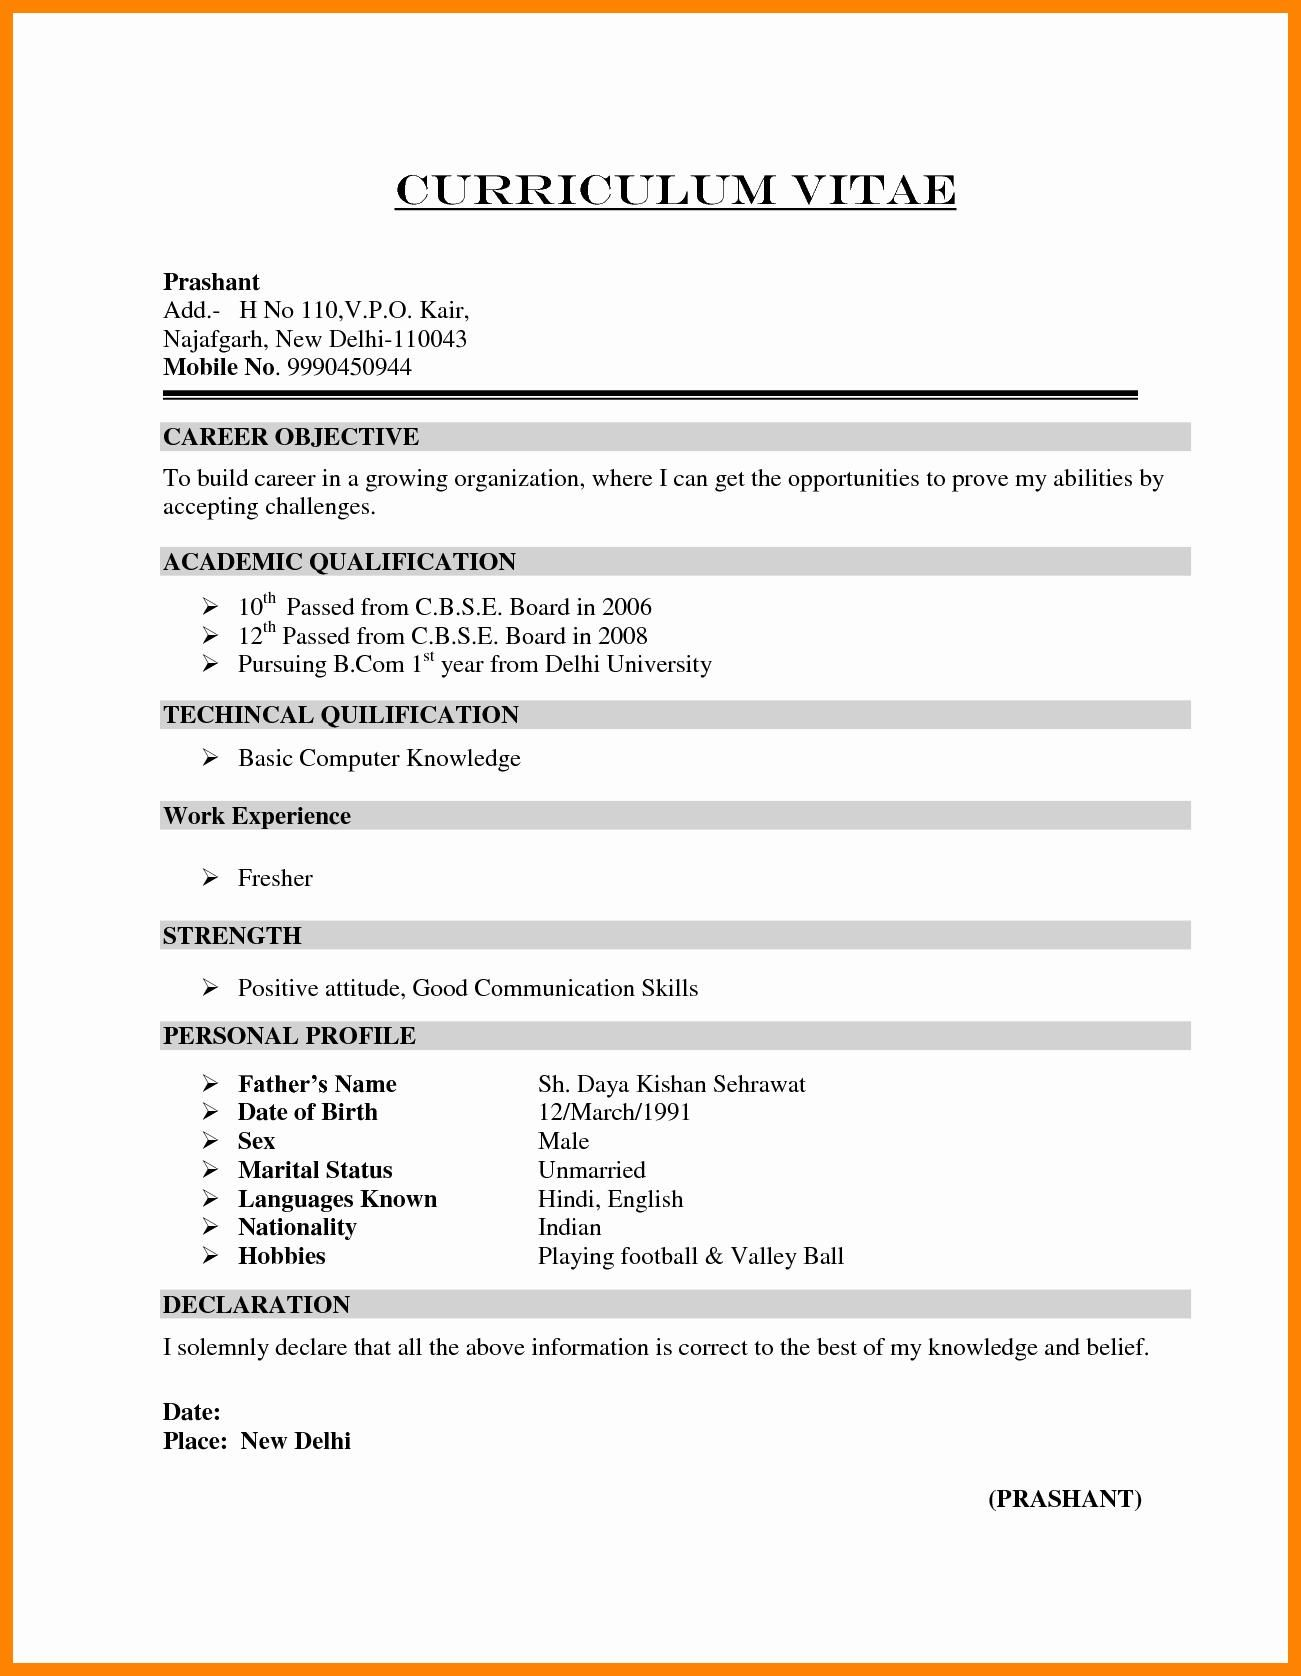 Sample Resume Format For Mechanical Engineering Freshers Filetype Doc Elegant Attractive B E Mech Sample Resume Format Resume Format Download Job Resume Format